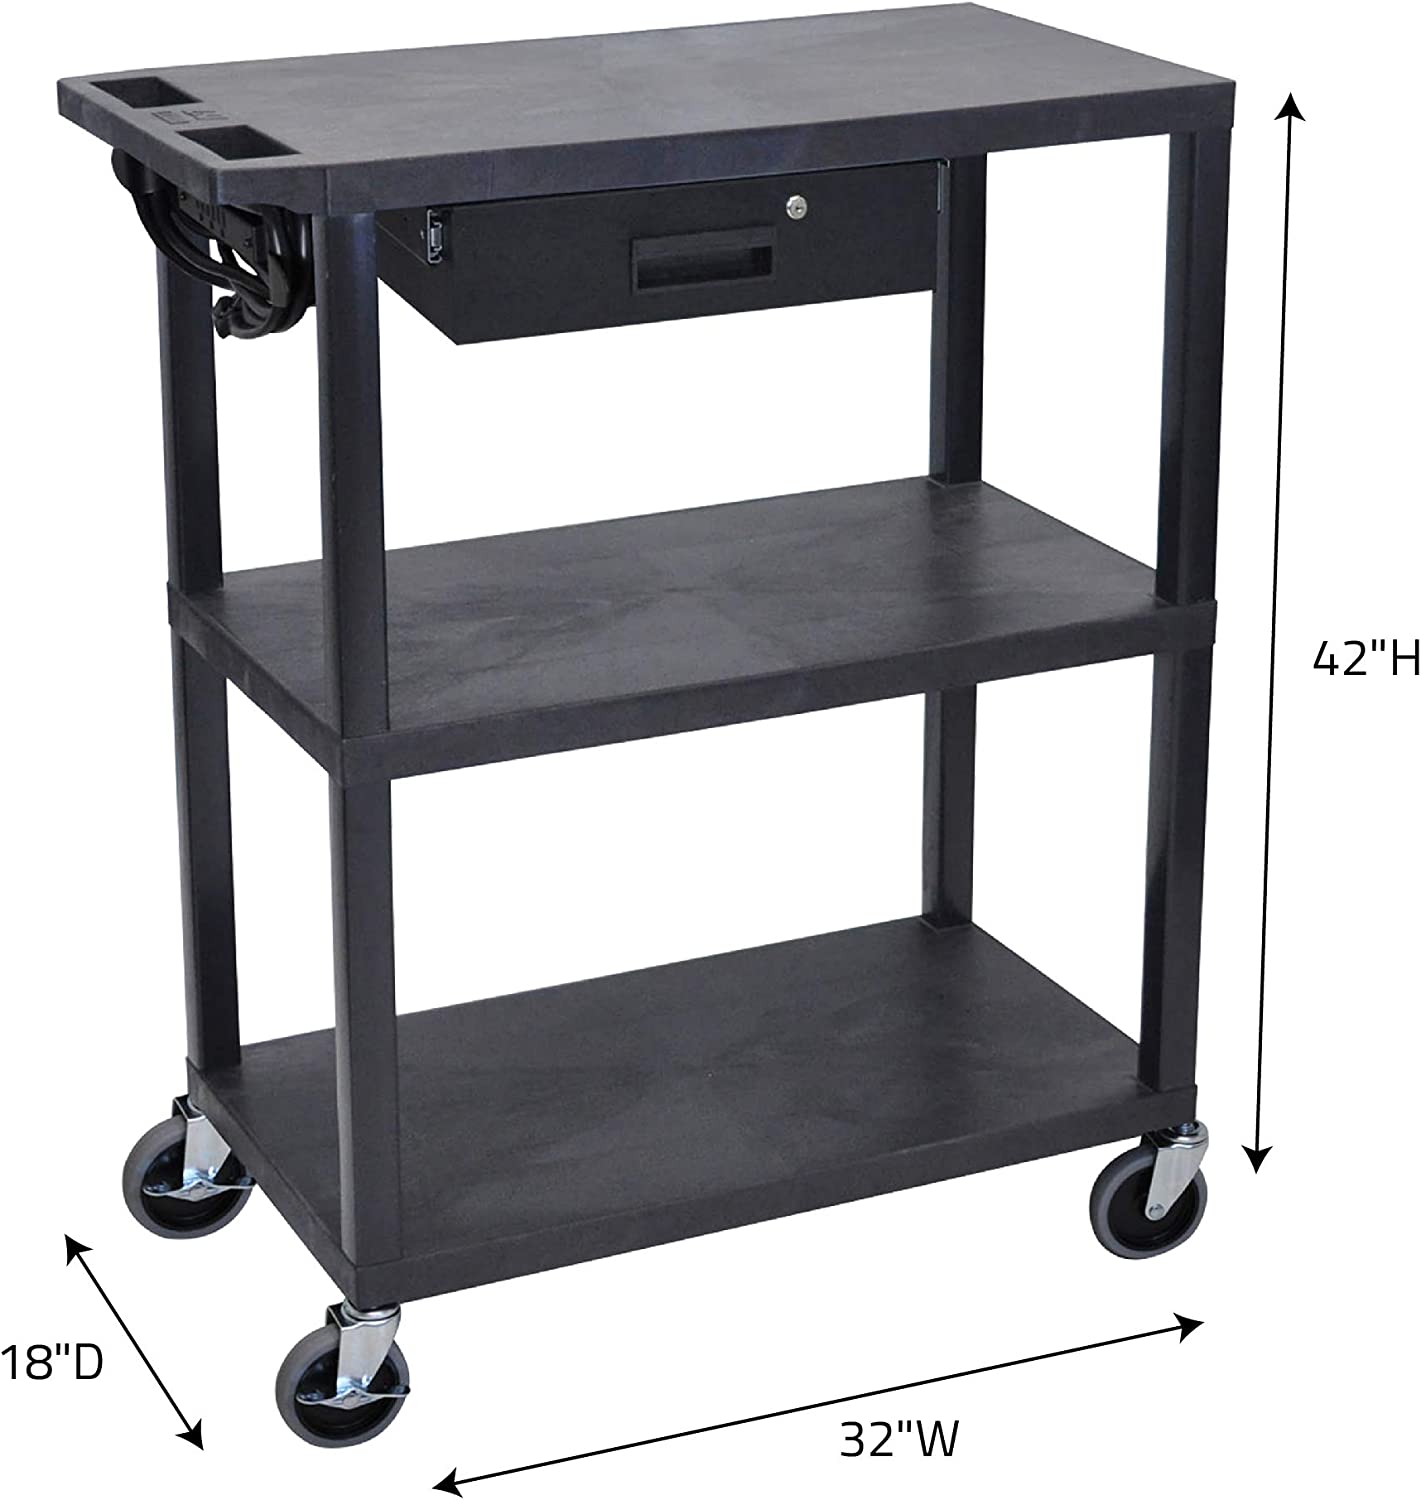 Amazon Com Offex 32 W X 18 D Multipurpose Storage Utility Rolling Electric Av Presentation Cart With 3 Flat Shelves And Drawer Black Ideal For Video Projector Tv Laptop Computer Printer Stand